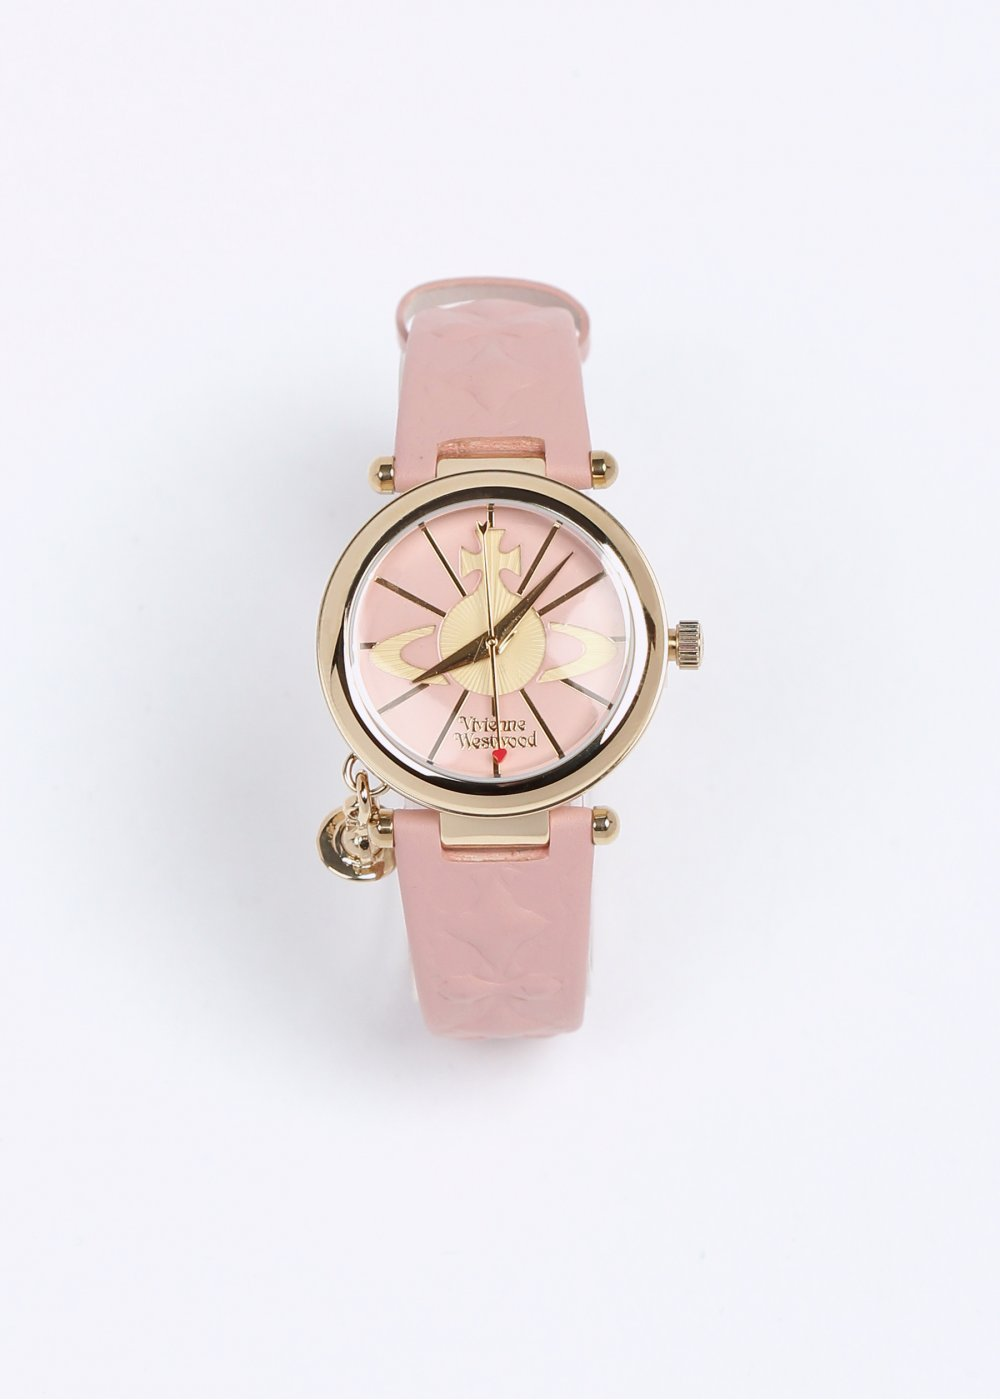 6d6cde7a51 Vivienne Westwood Orb II Watch - Pink / Gold , SS14.